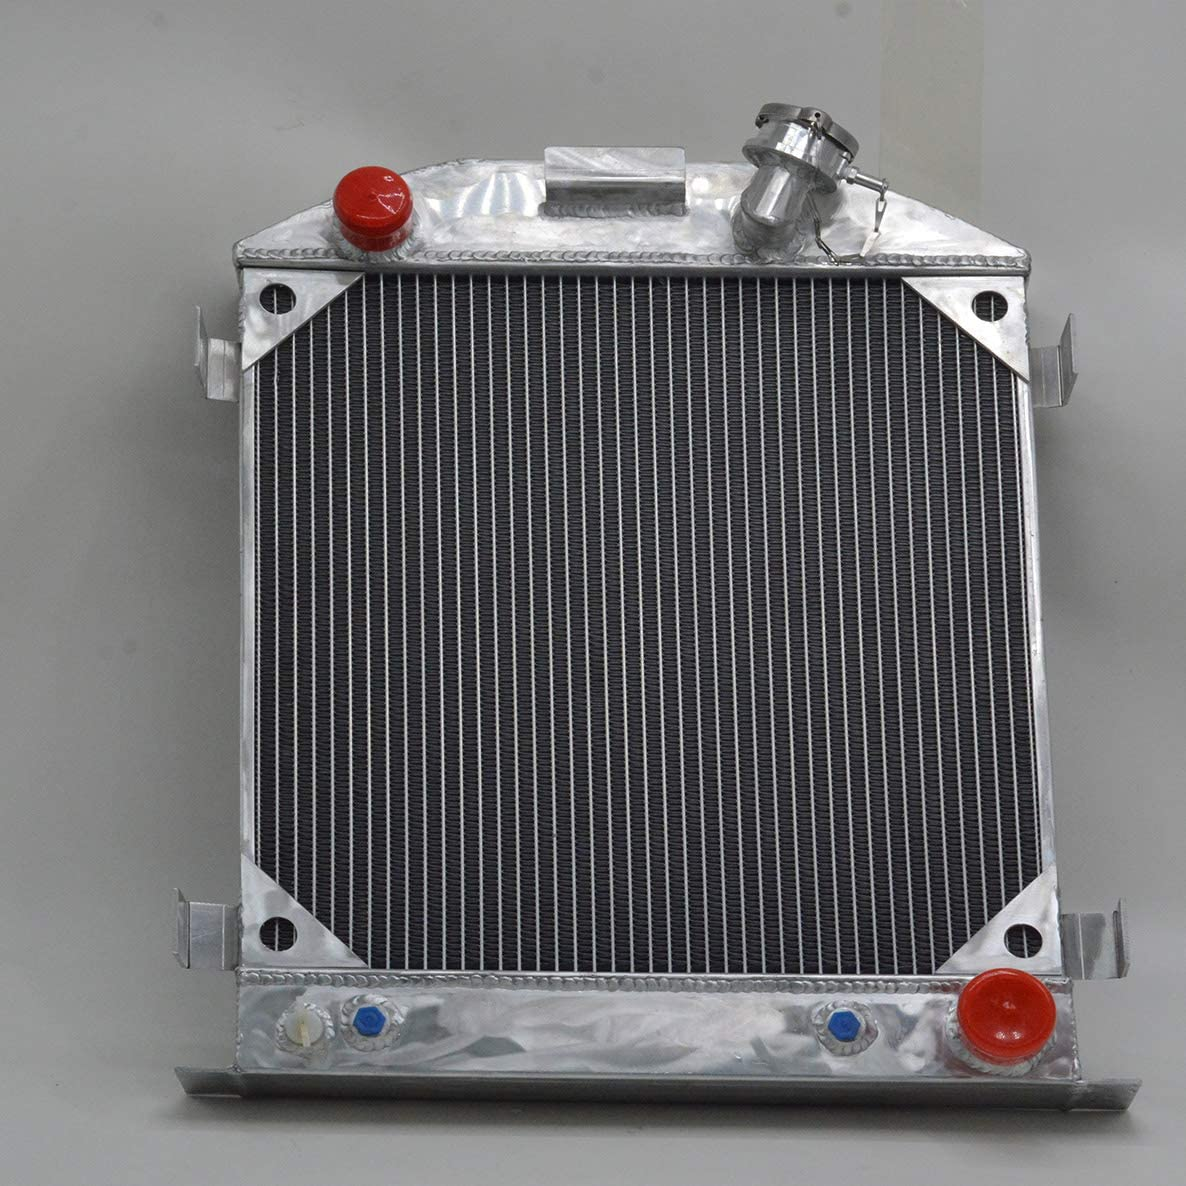 FOR 3 ROW Ford 1932 hot rod w//Chevy 350 V8 engine aluminum radiator